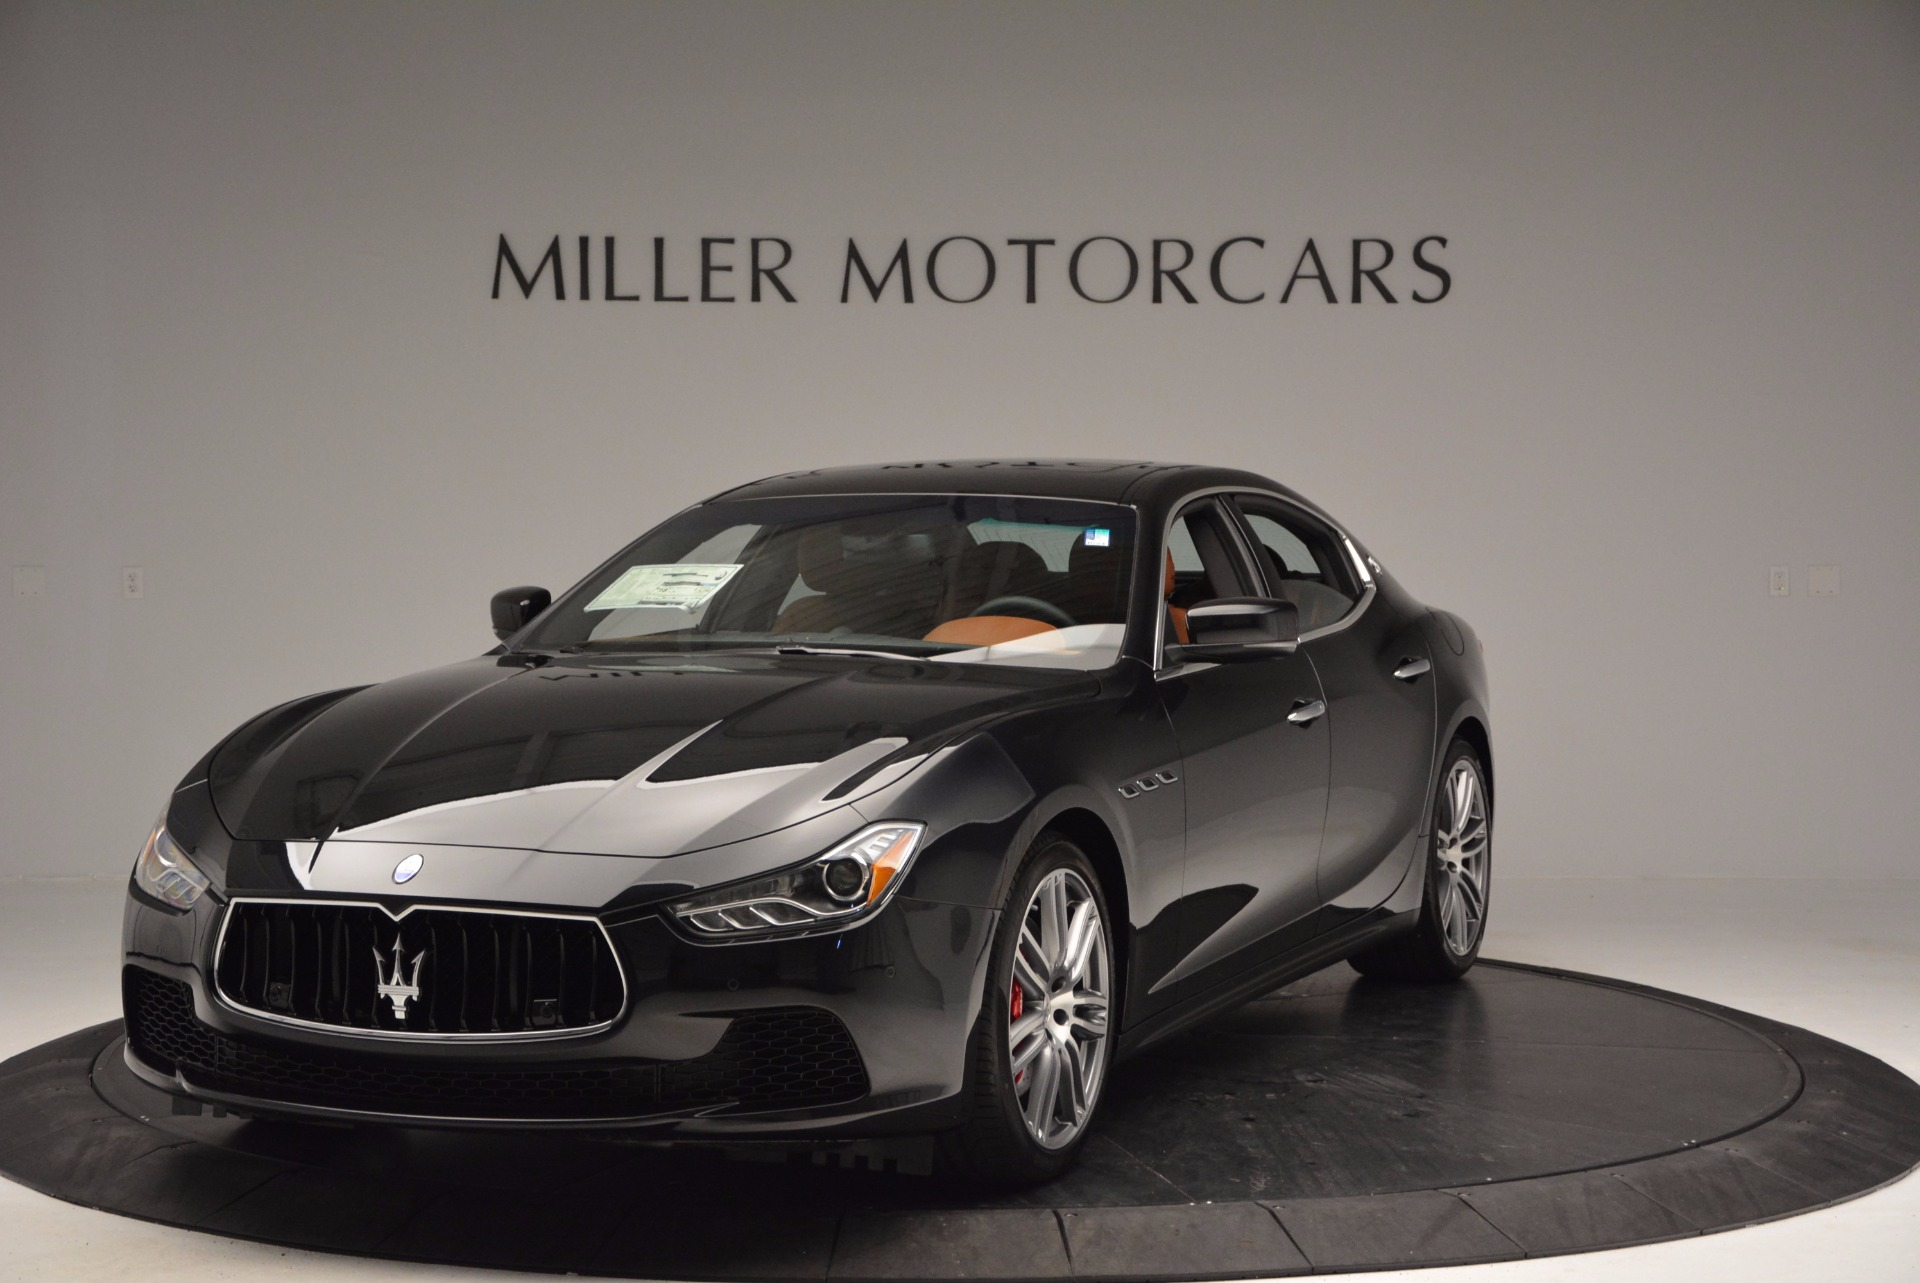 Used 2017 Maserati Ghibli S Q4 for sale Sold at Aston Martin of Greenwich in Greenwich CT 06830 1